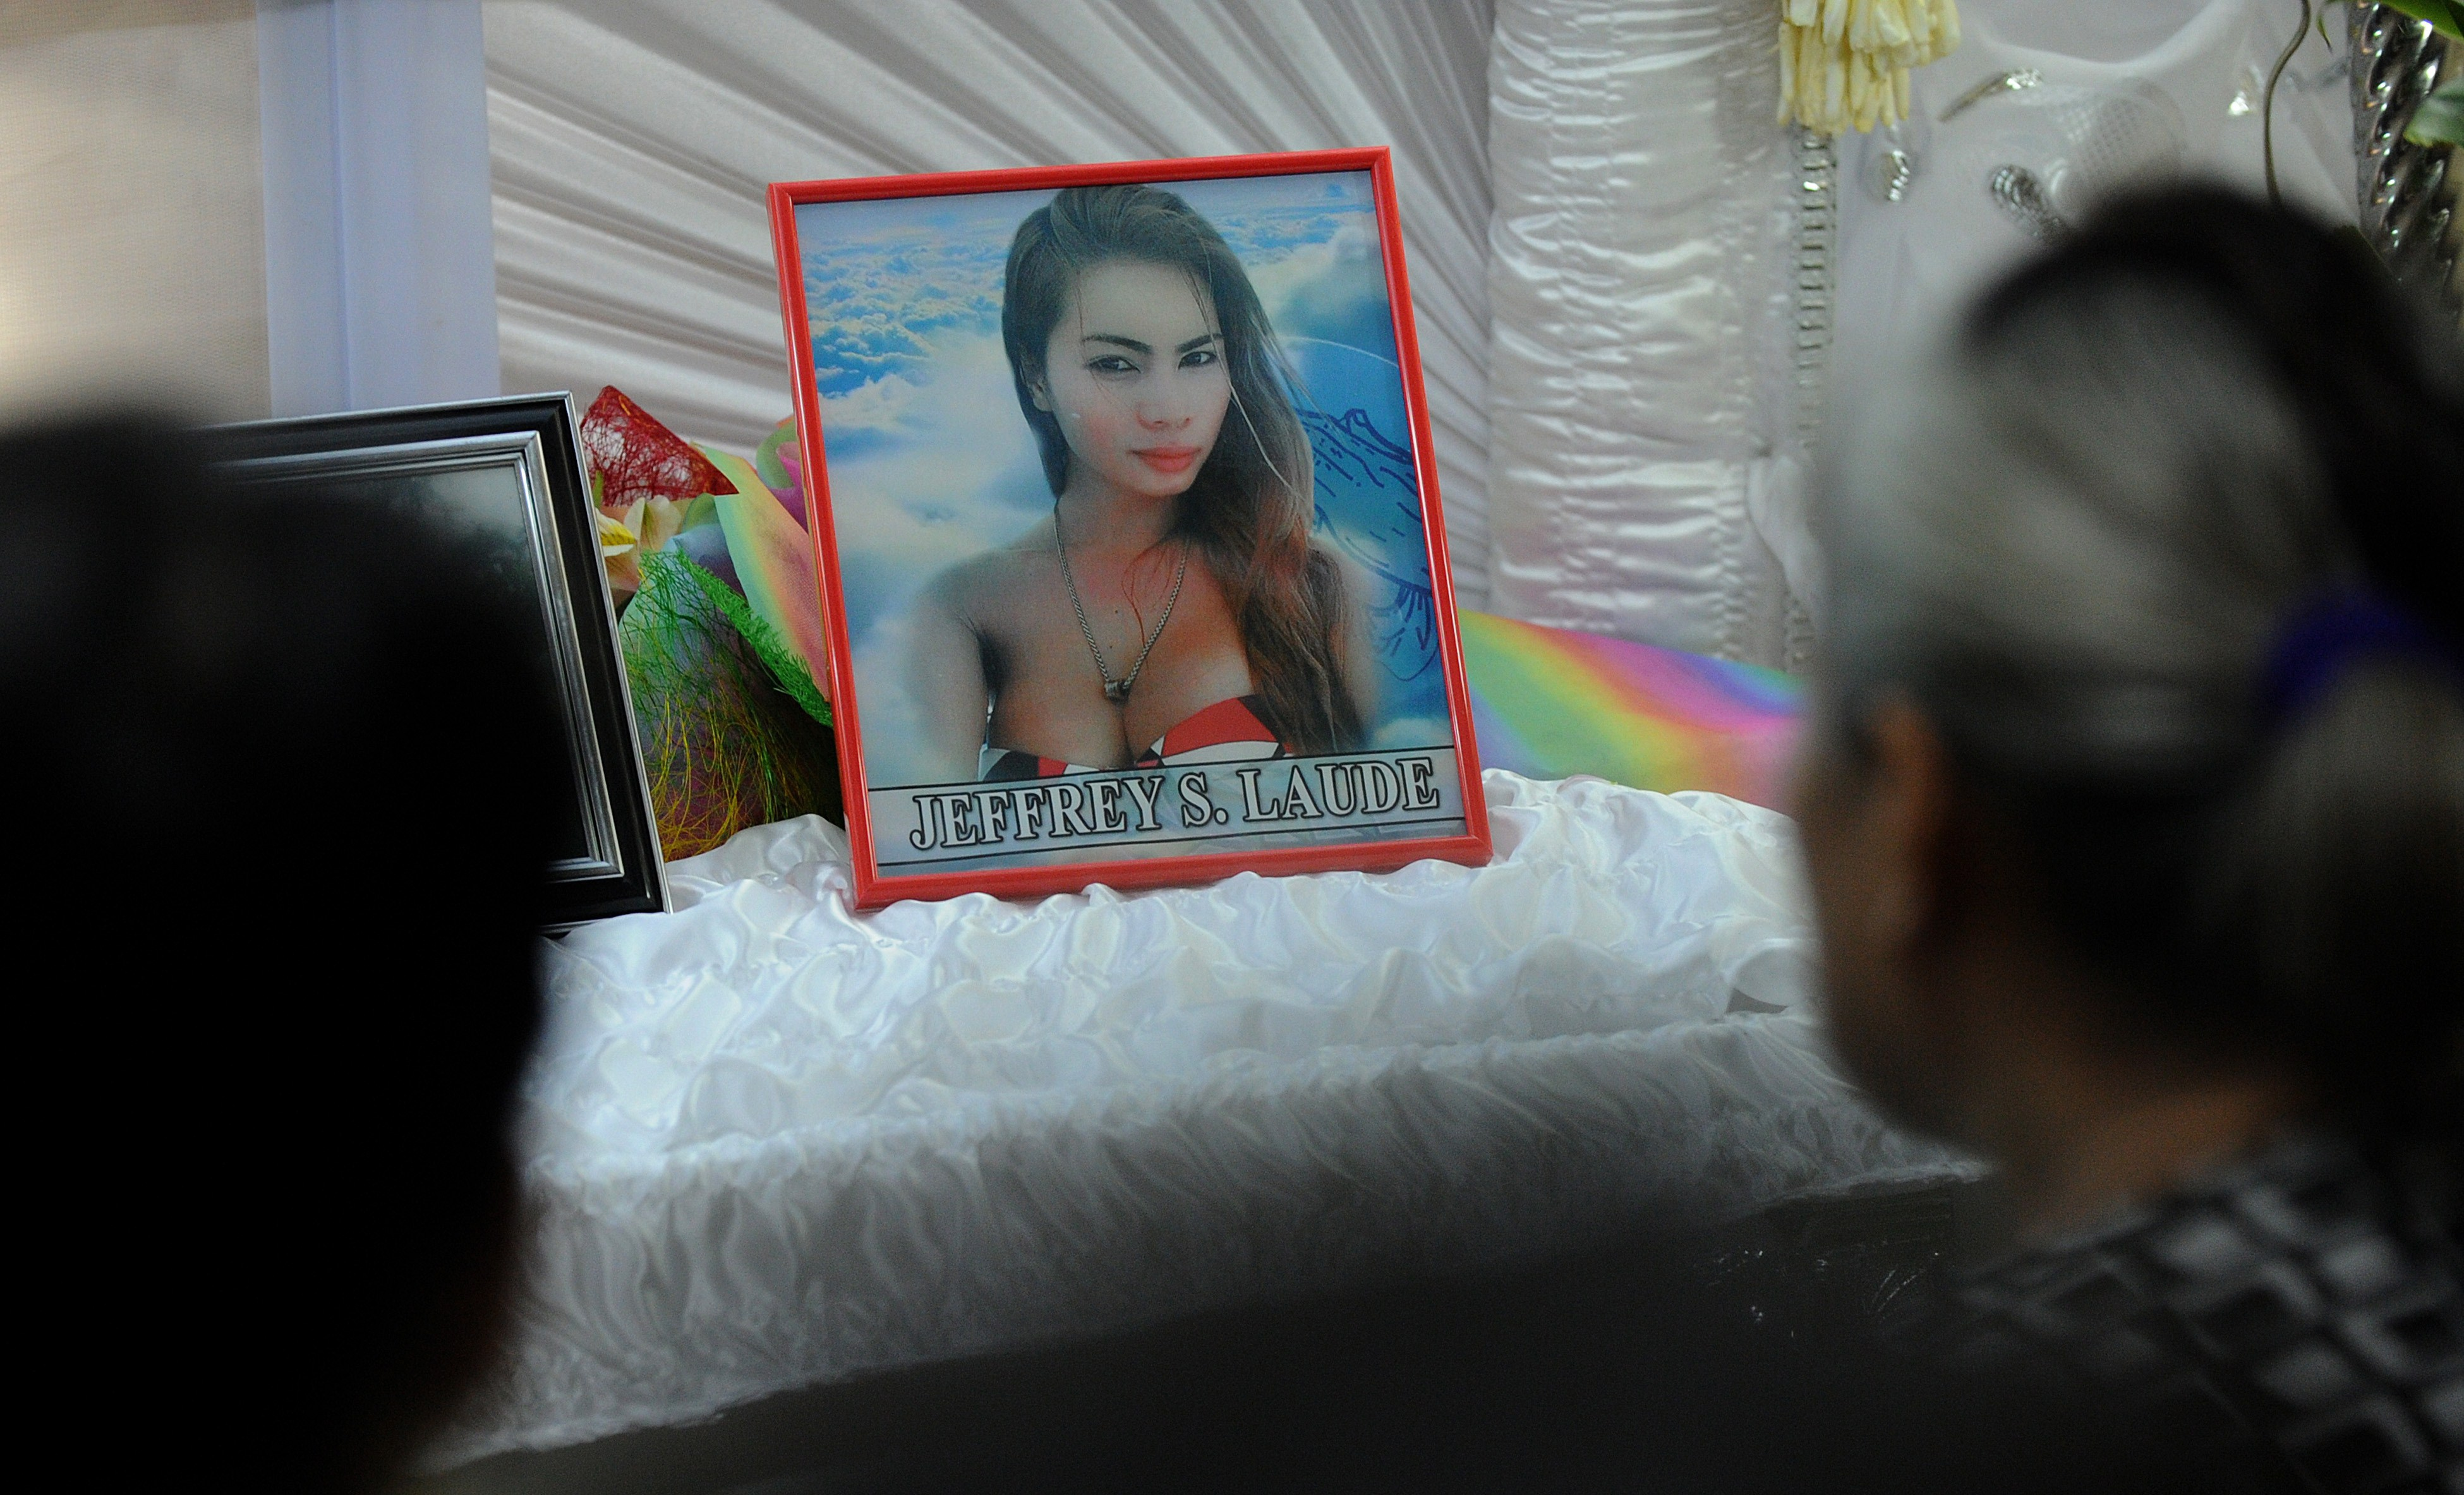 Friends and relatives of Jeffrey Laude, a Filipino transgender woman who went by Jennifer, look at her coffin in the northern Philippine city of Olongapo on Oct. 14, 2014.